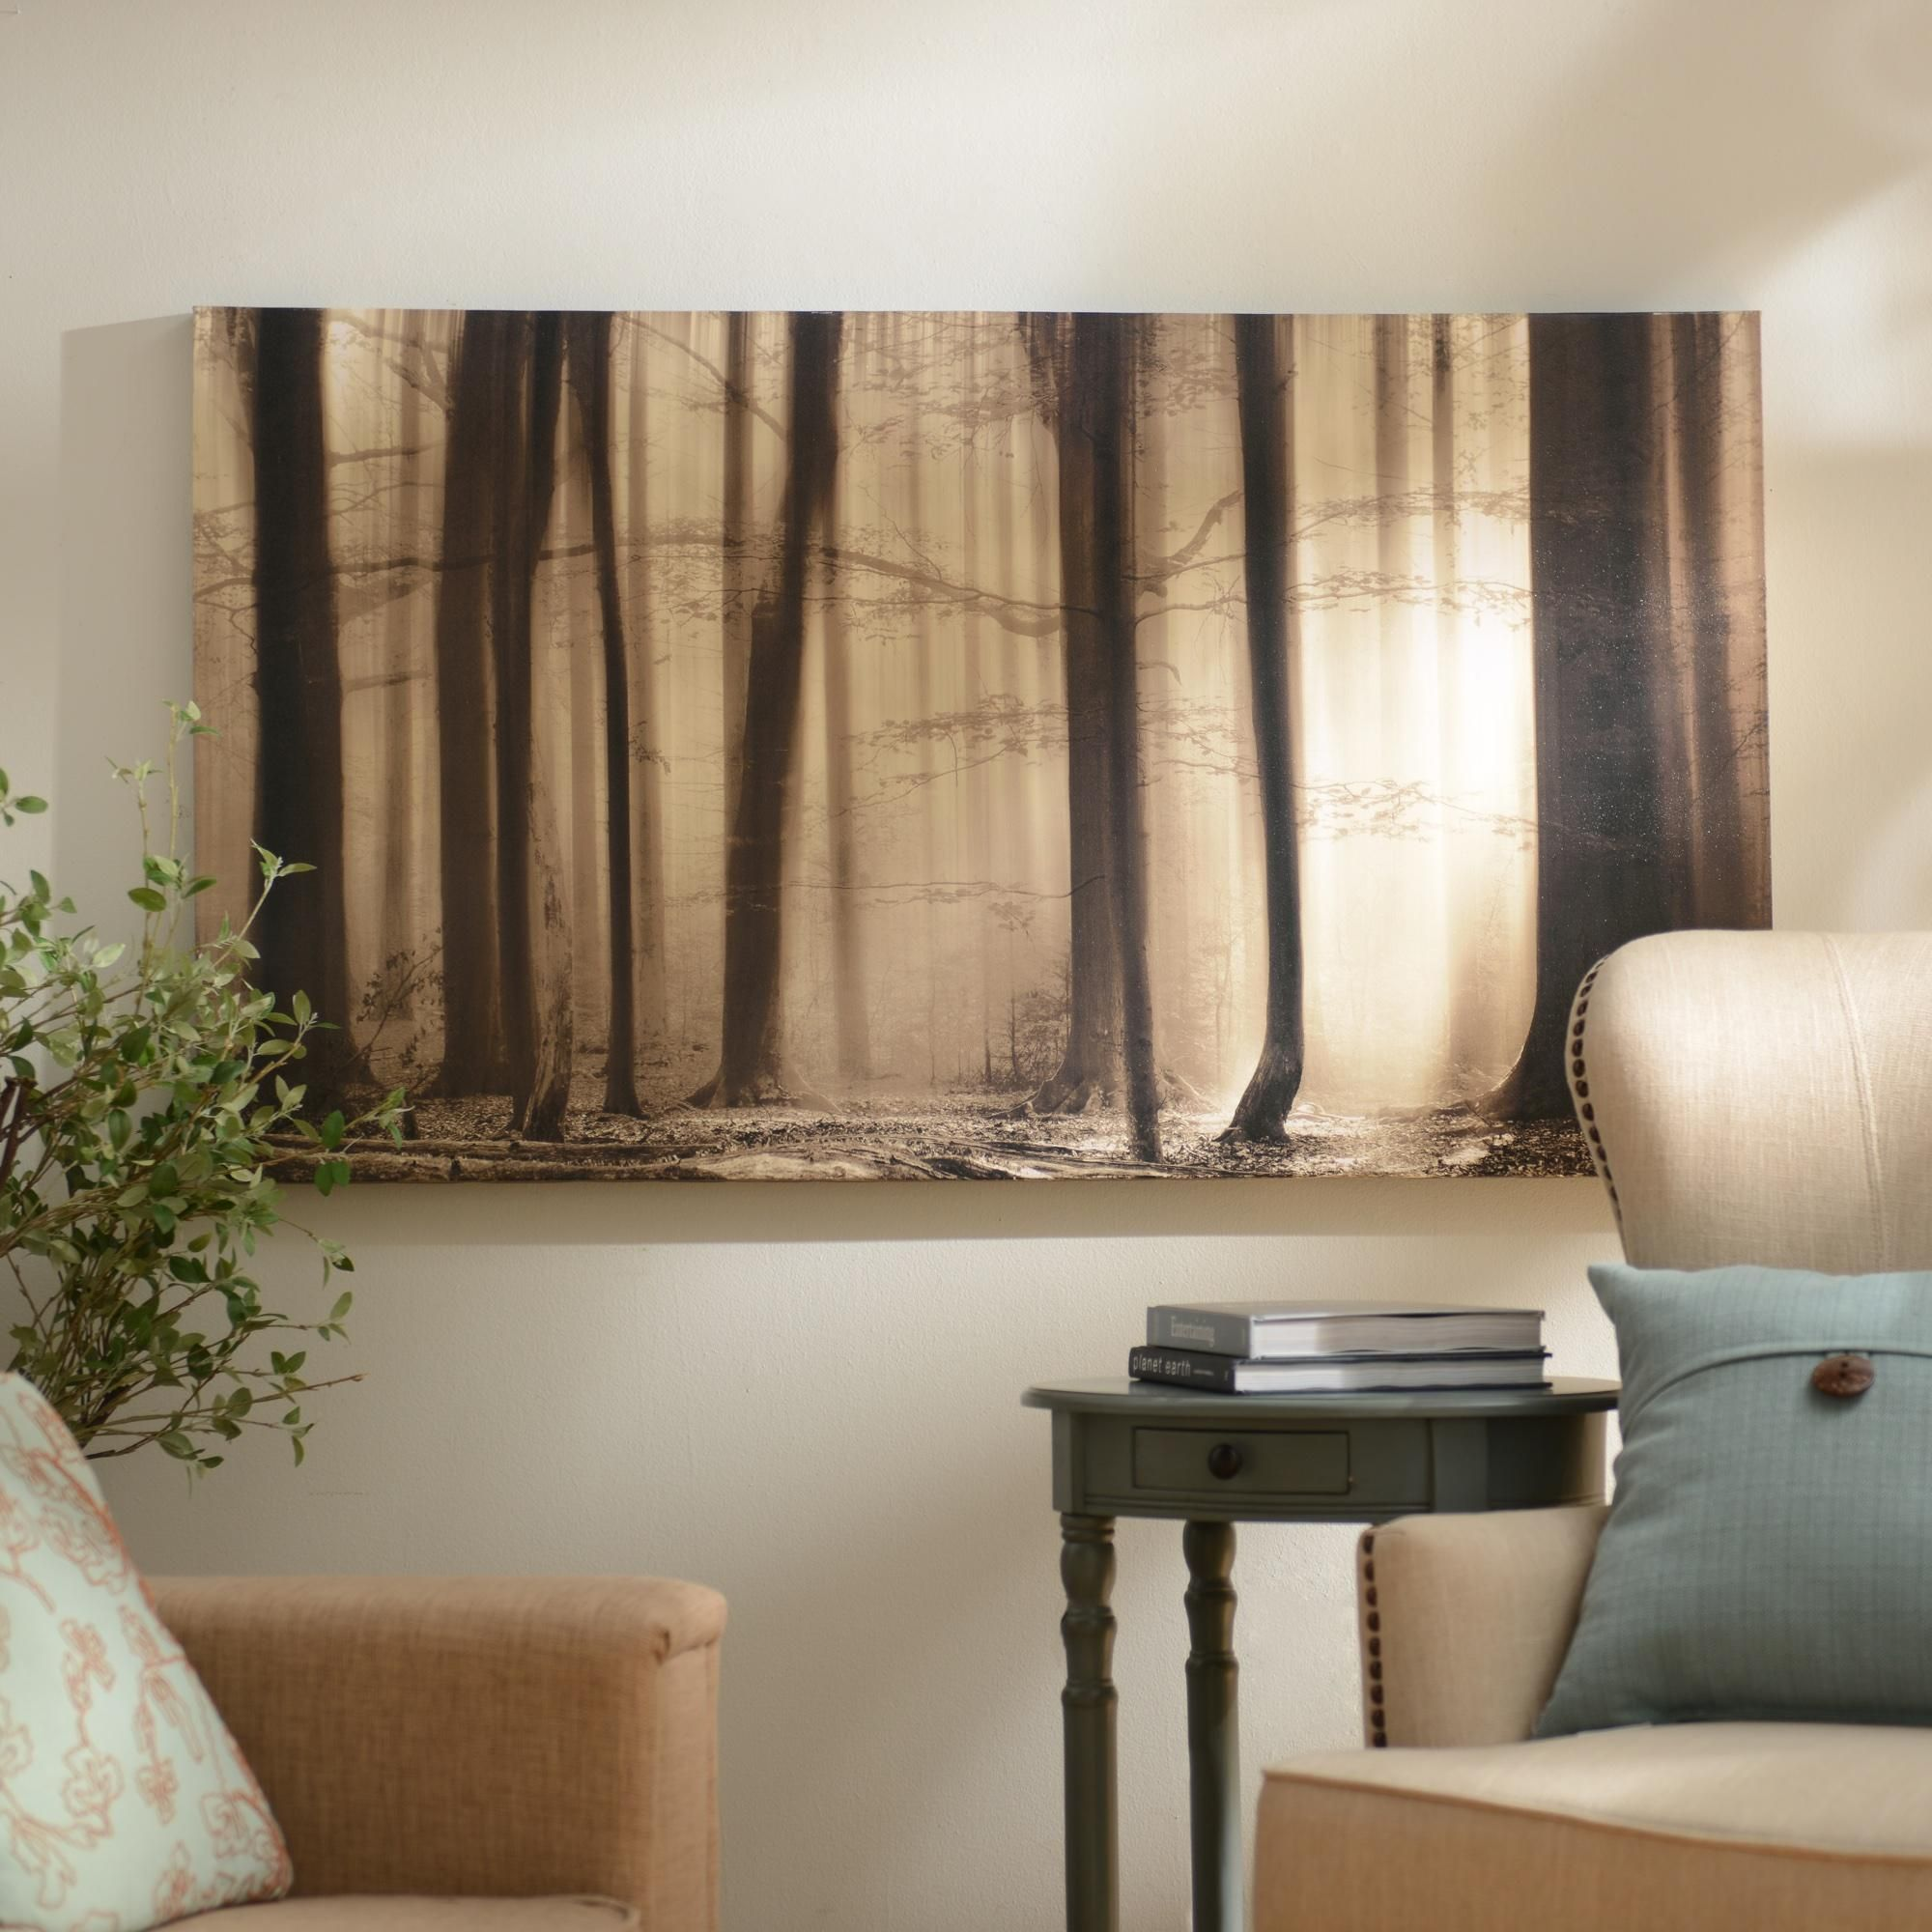 living room ideas bring peace and relaxation to your home with kirklands morning mist canvas art print this